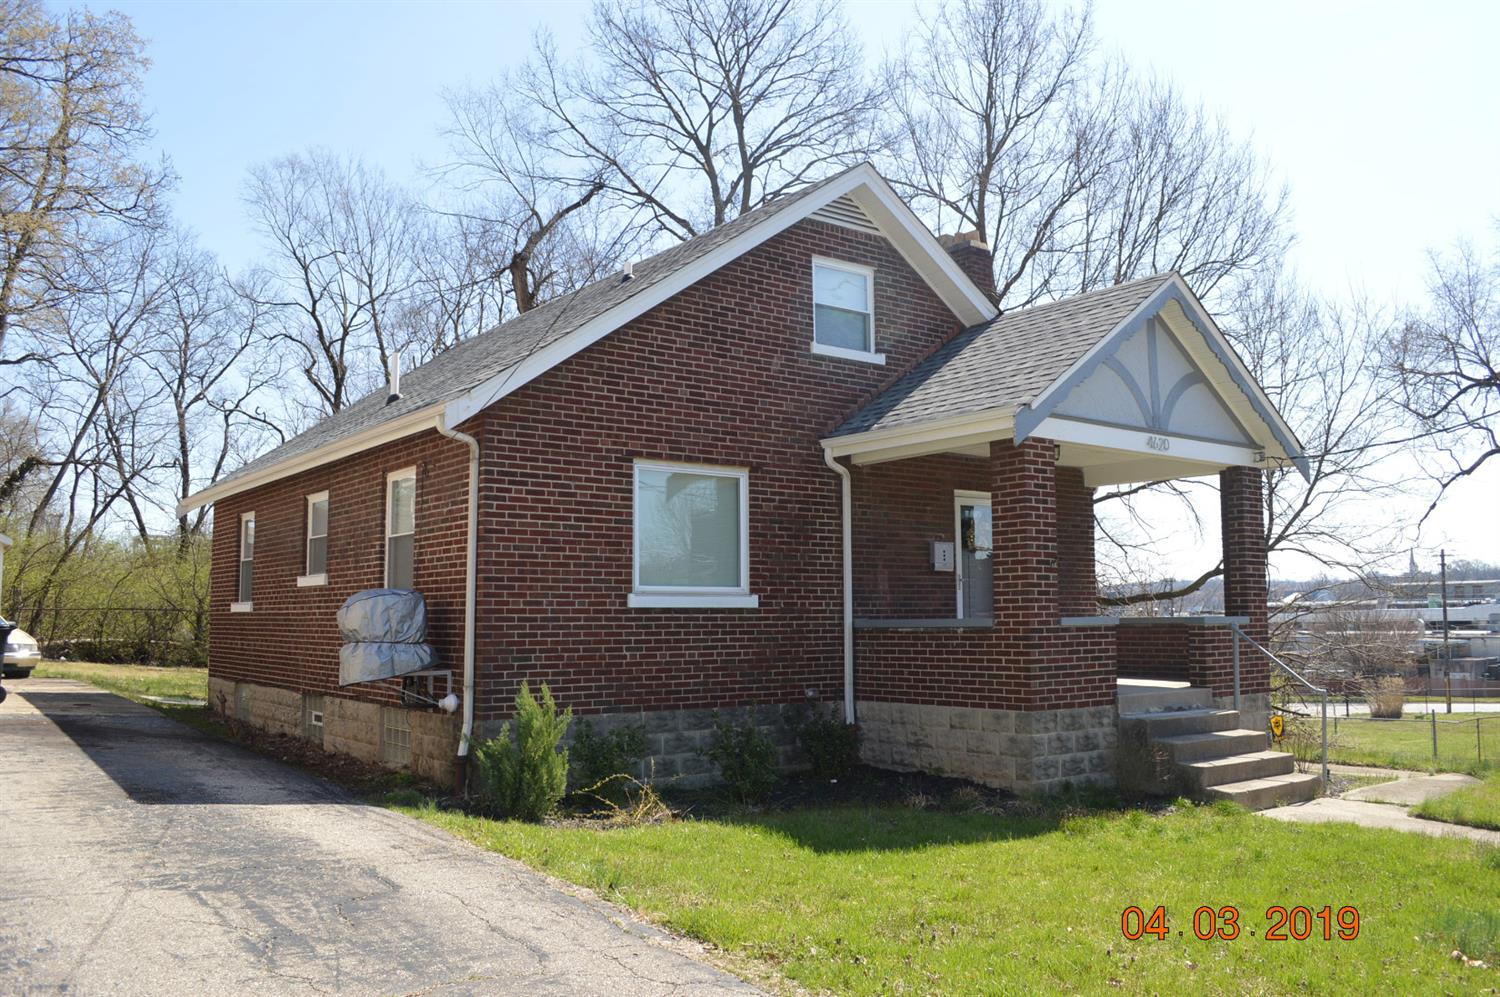 Photo 3 for 4620 Chickering Ave Spring Grove, OH 45232